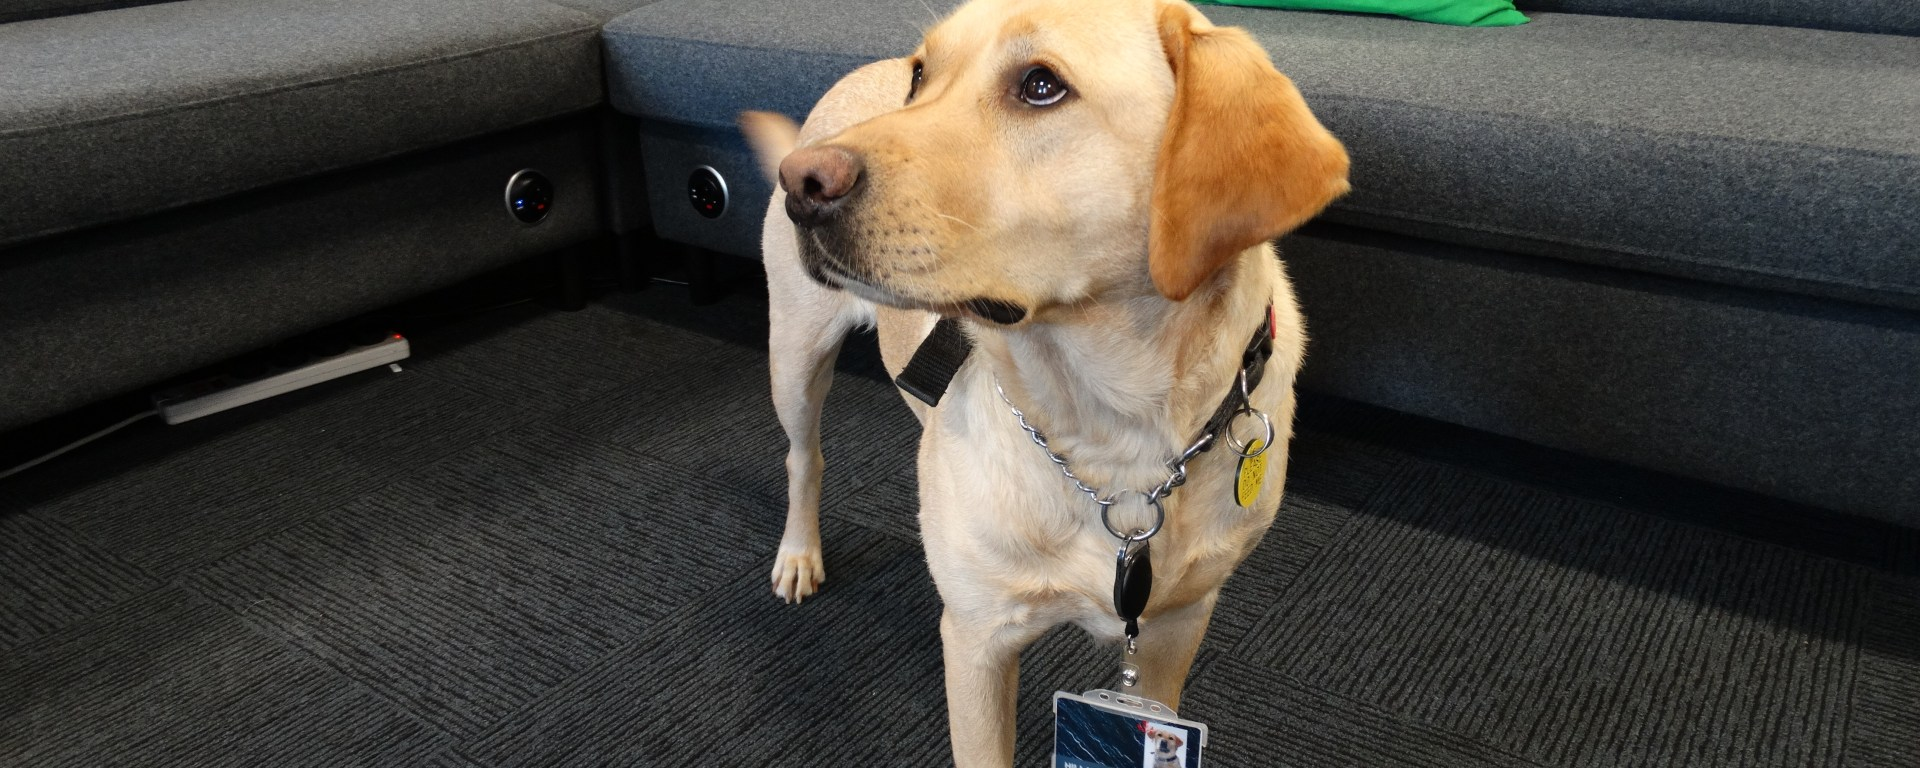 Image of Hillary the guide dog looking up at the camera displaying her pass